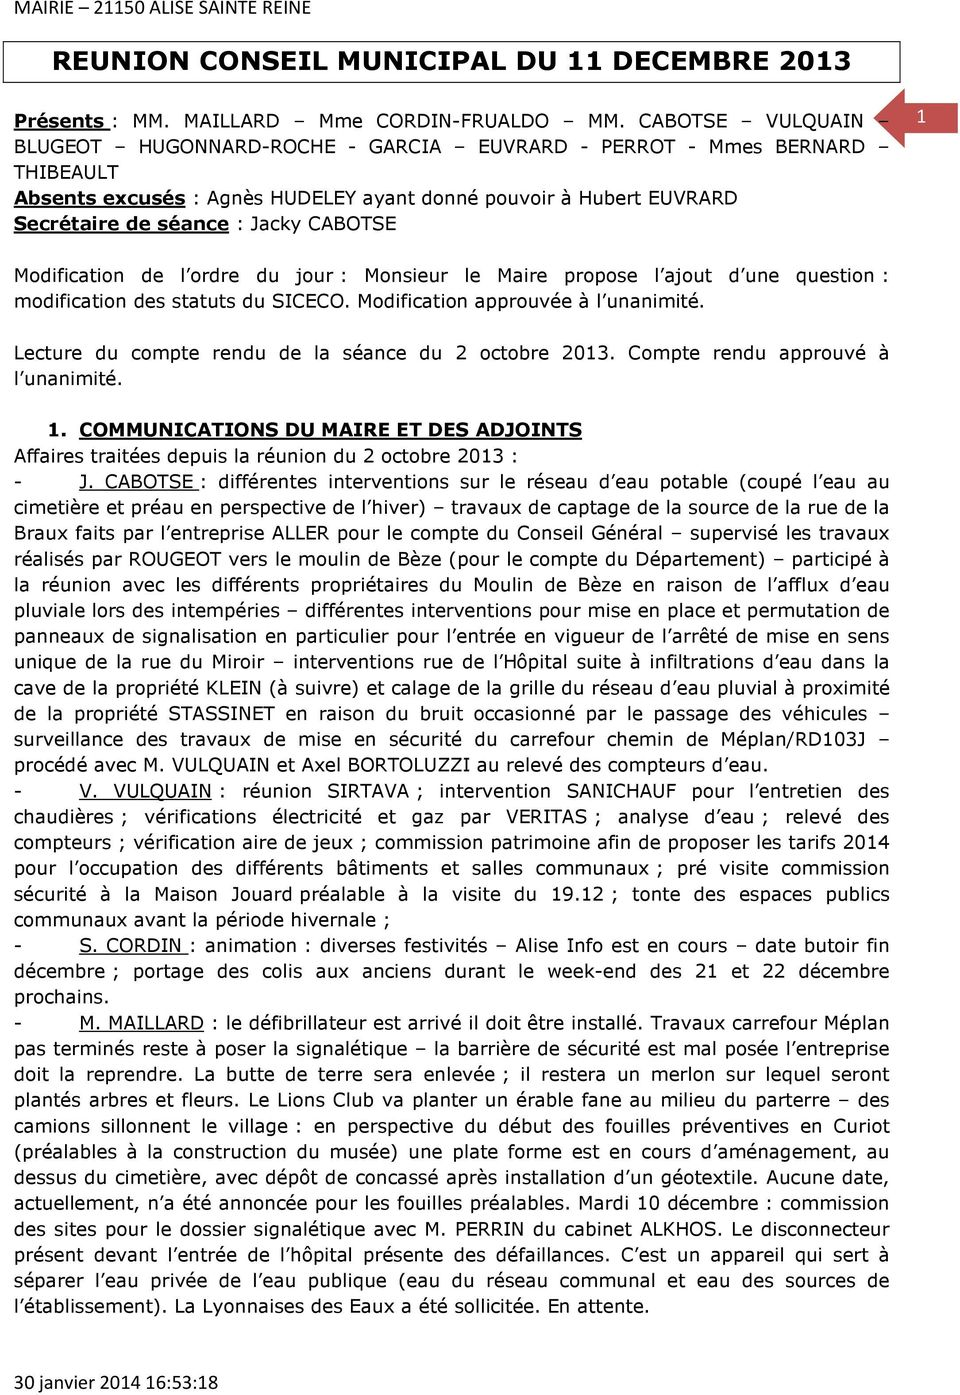 Modification de l ordre du jour : Monsieur le Maire propose l ajout d une question : modification des statuts du SICECO. Modification approuvée à l unanimité.